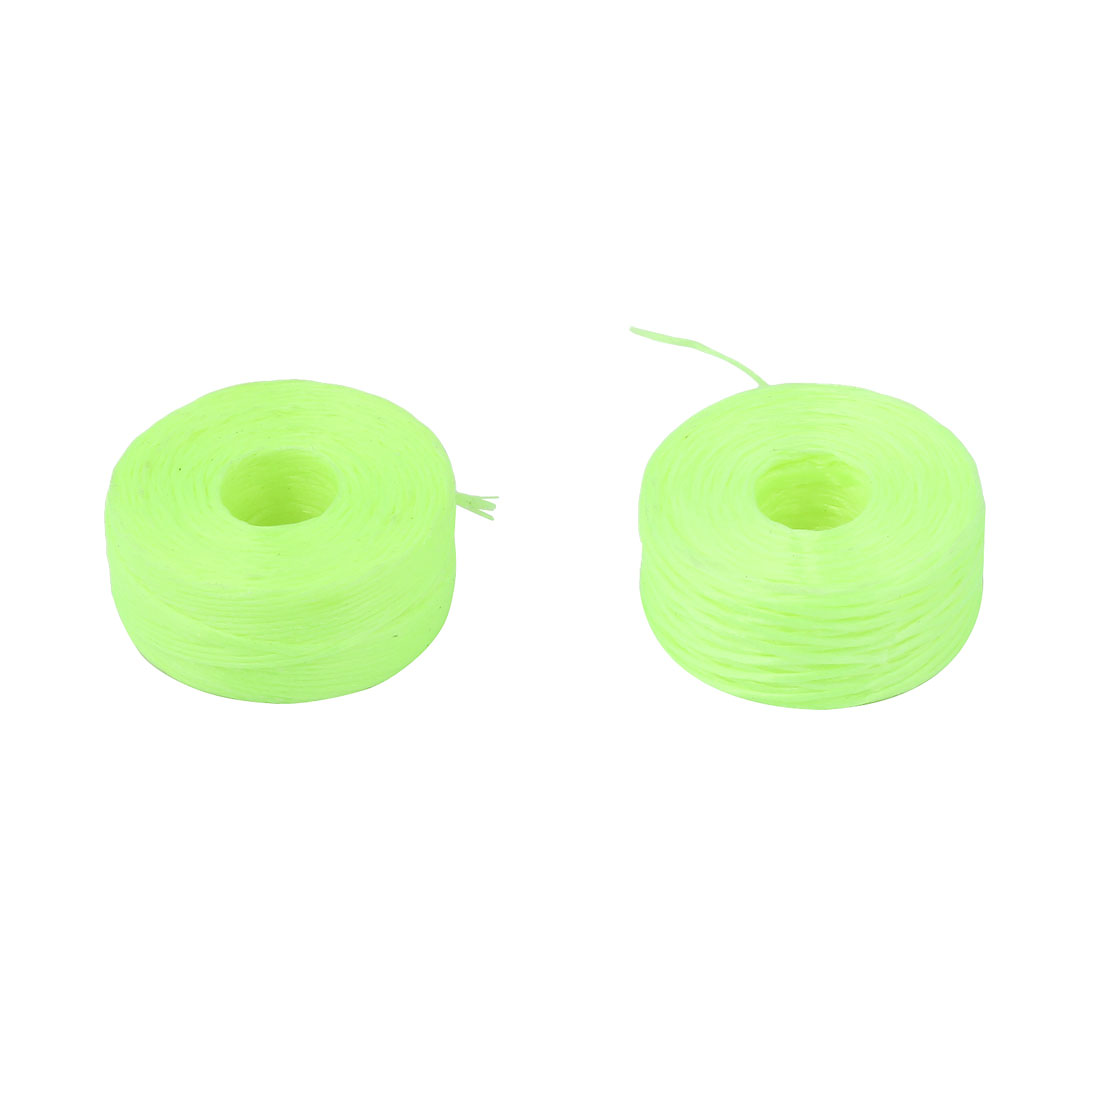 300M Length 1.5# Thread 4.8Kg Fishing Nylon Line String Yellow Green 2 Pcs